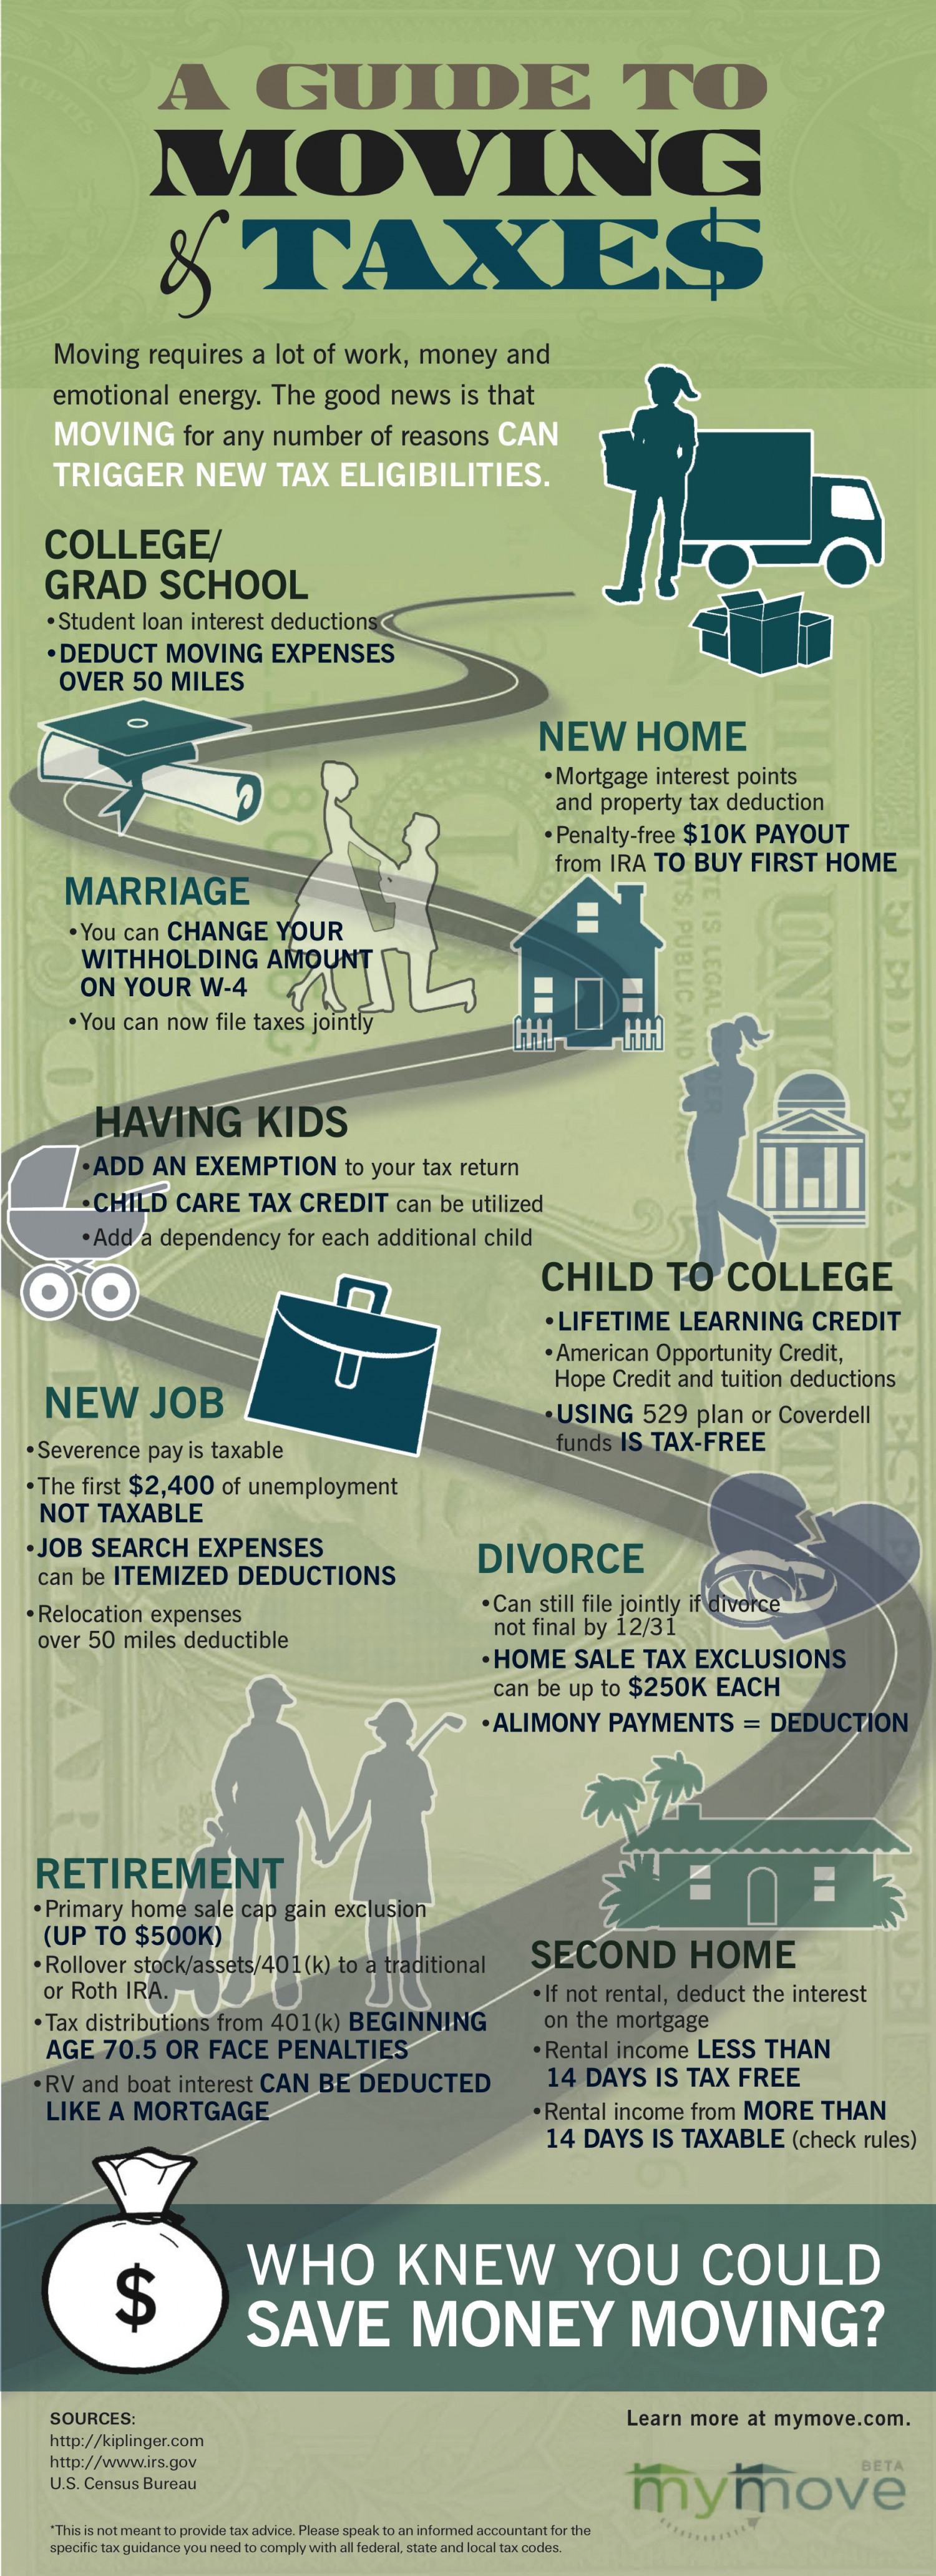 A Guide To Moving and Taxes Infographic